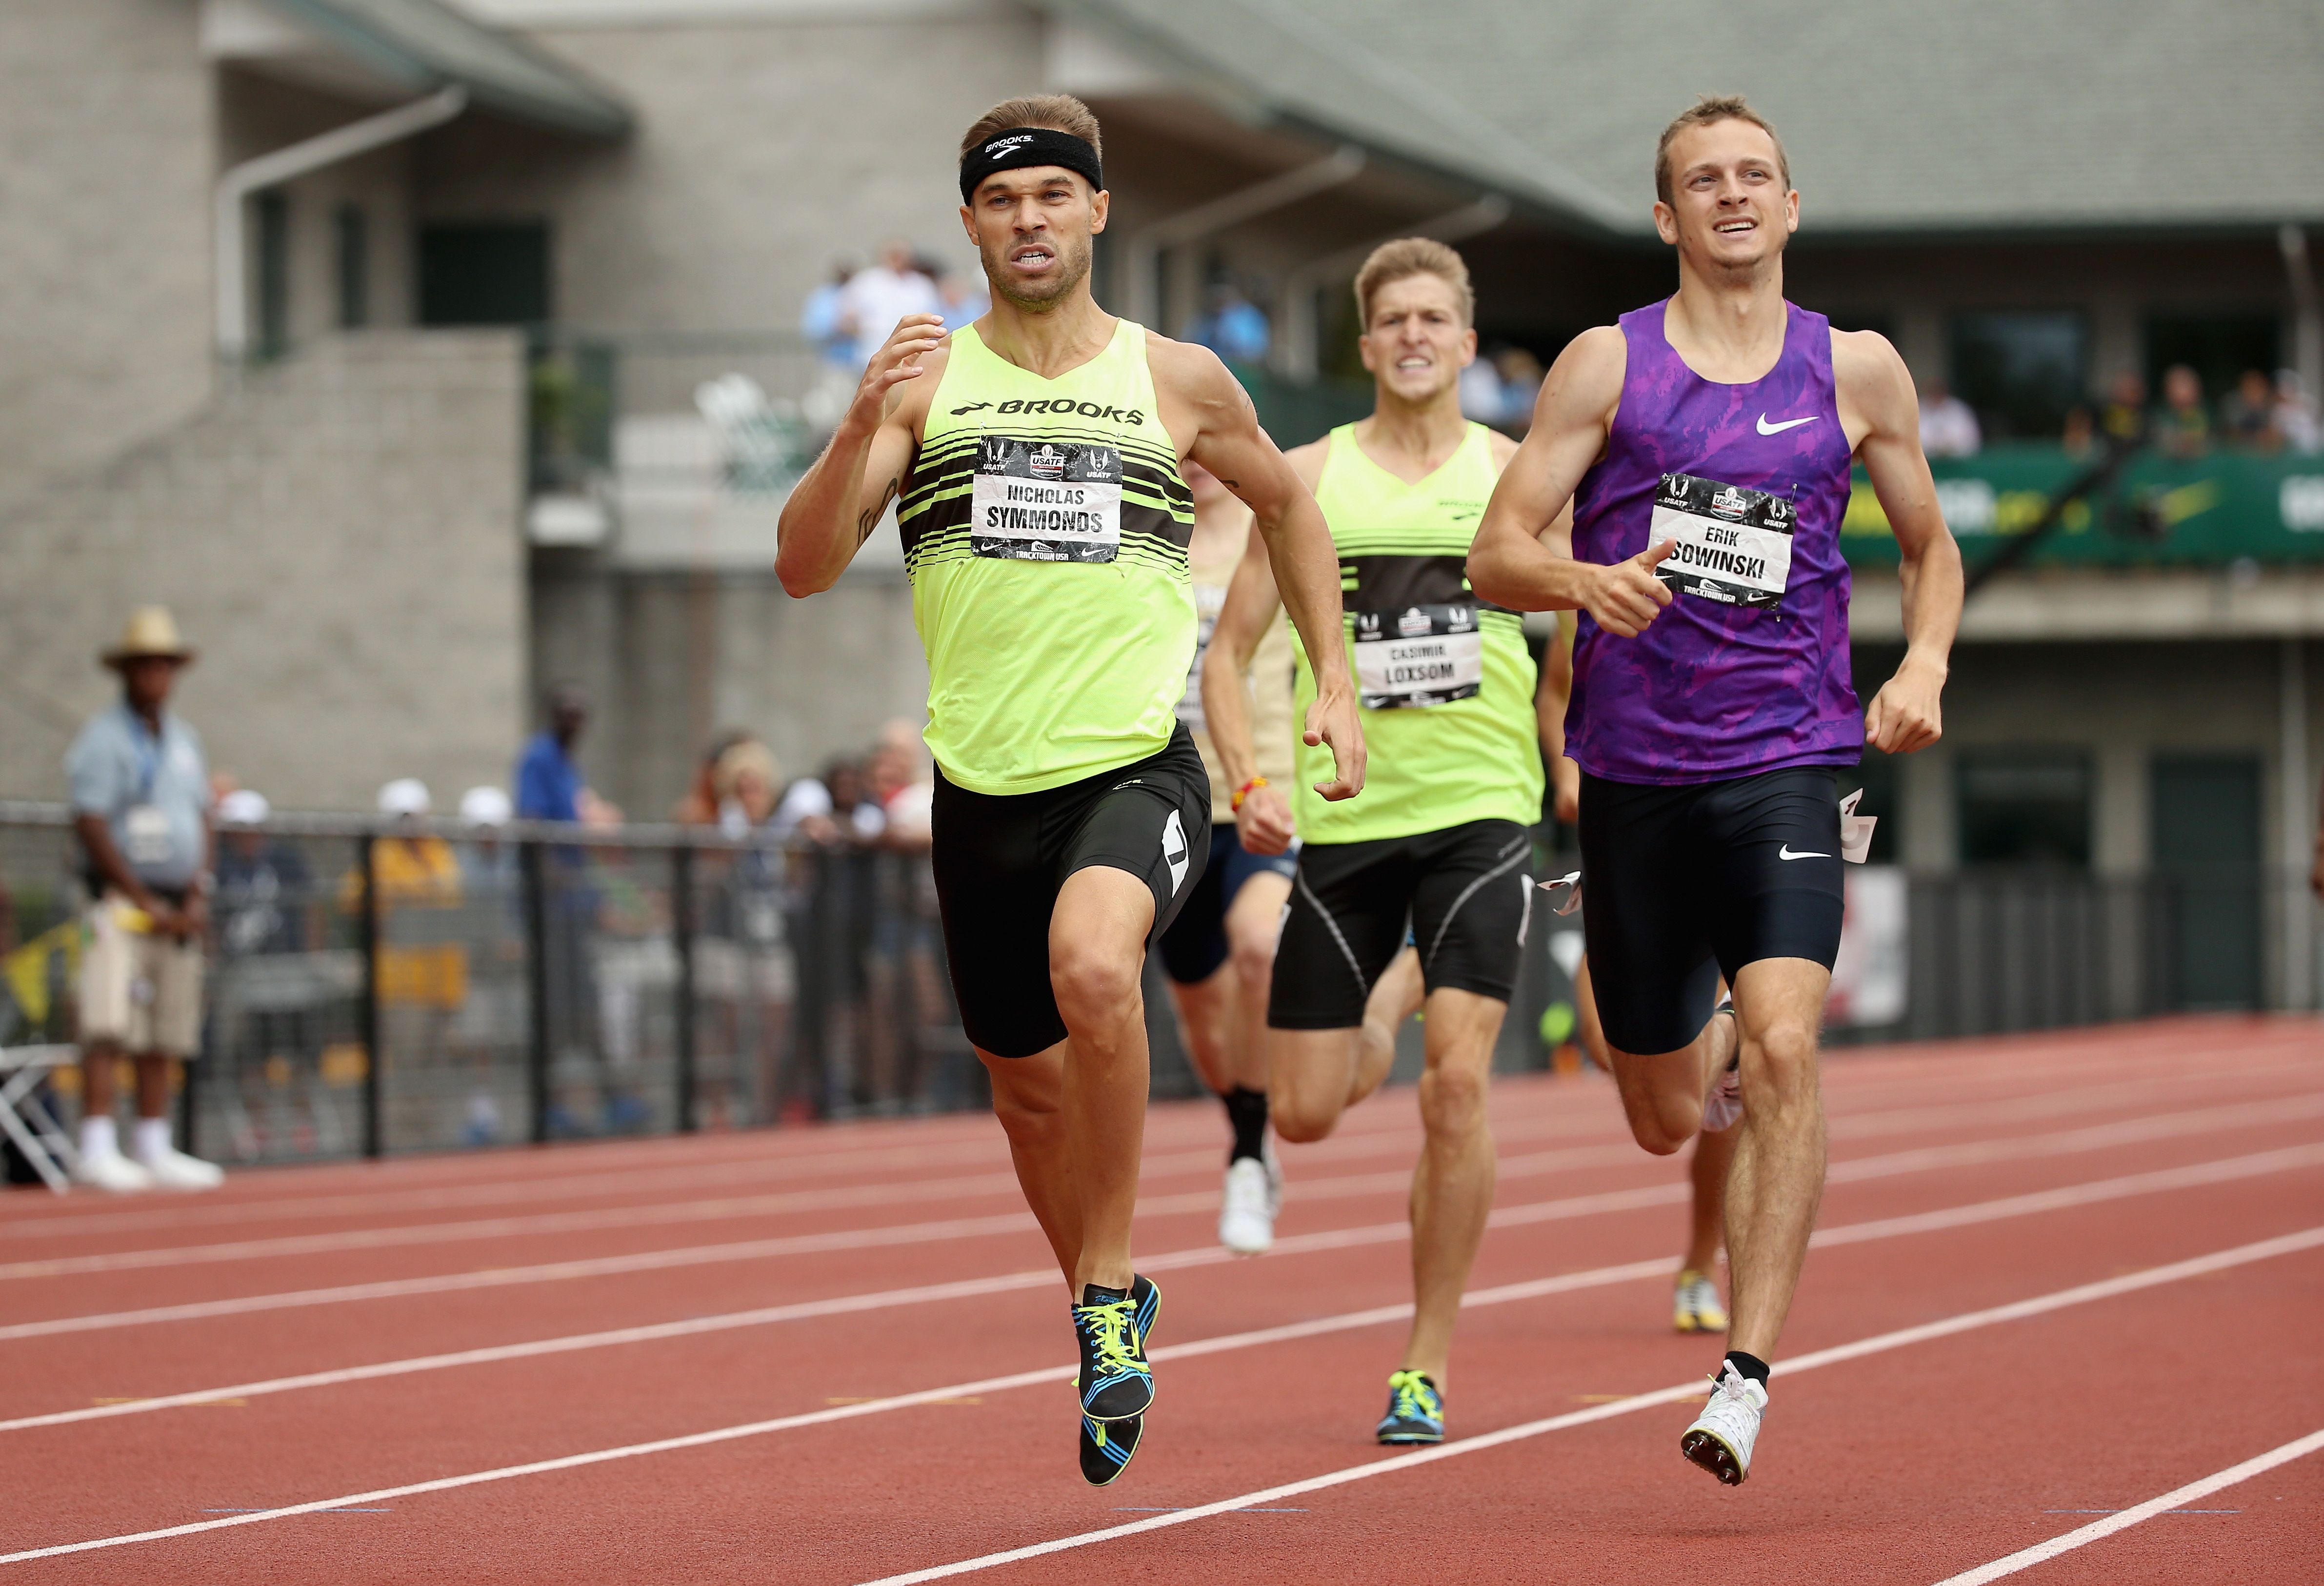 Nicholas Symmonds runs to victory in the Mens 800 Meter during day four of the 2015 USA Outdoor Track & Field Championships at Hayward Field on June 28, 2015 in Eugene, Oregon. (Photo by Andy Lyons/Getty Images)